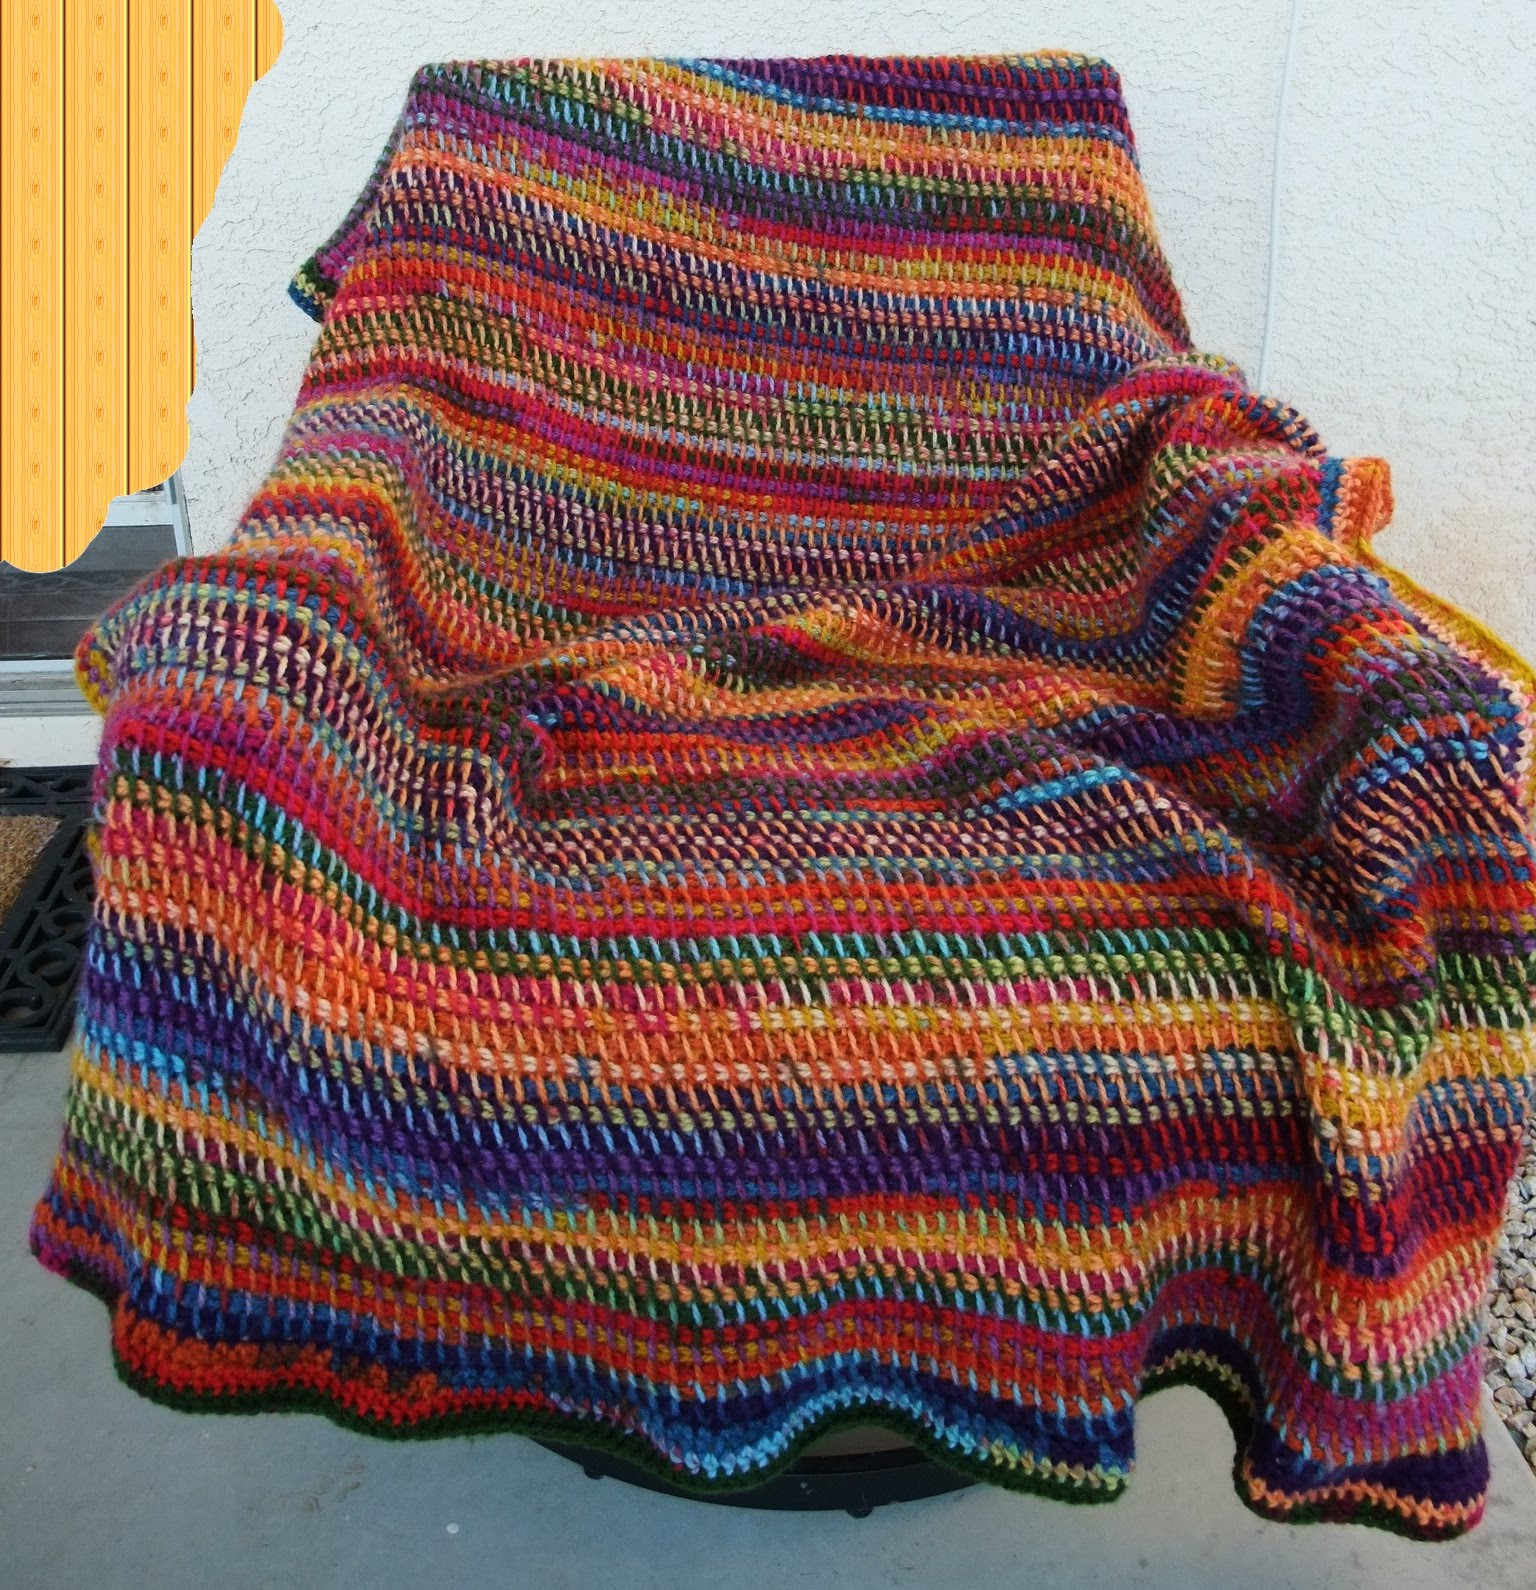 Awesome Tunisian Crochet Afghan Patterns Bing Images Tunisian Crochet Afghan Patterns Of Luxury 33 Pictures Tunisian Crochet Afghan Patterns